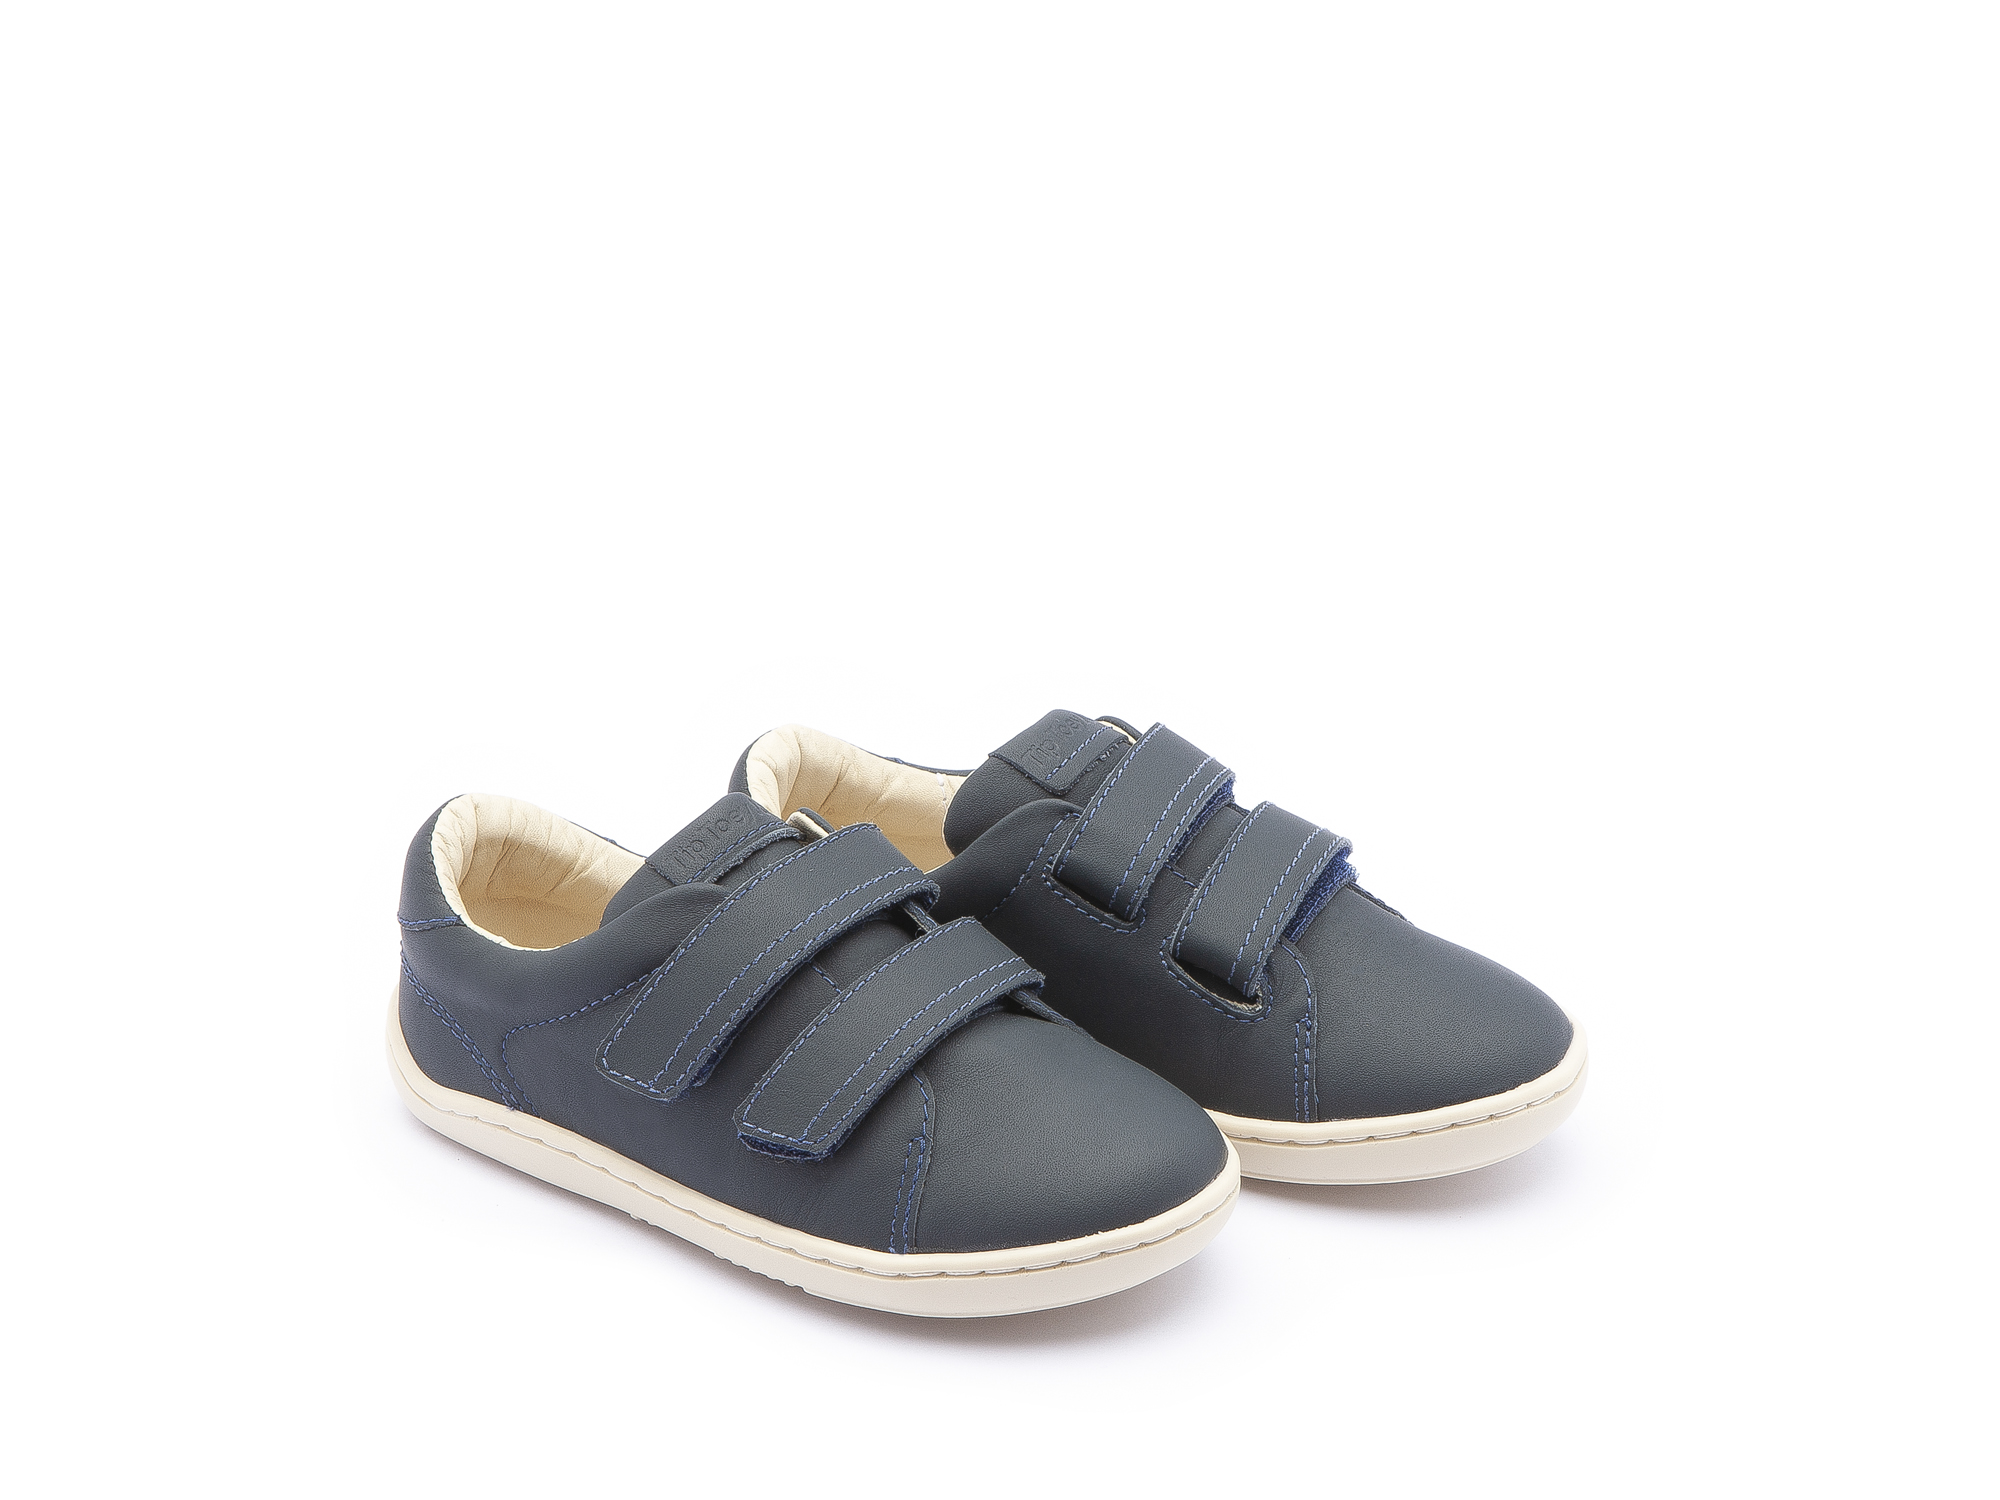 Sneaker Casual Little Guide Navy  Toddler 2 à 4 anos - 0